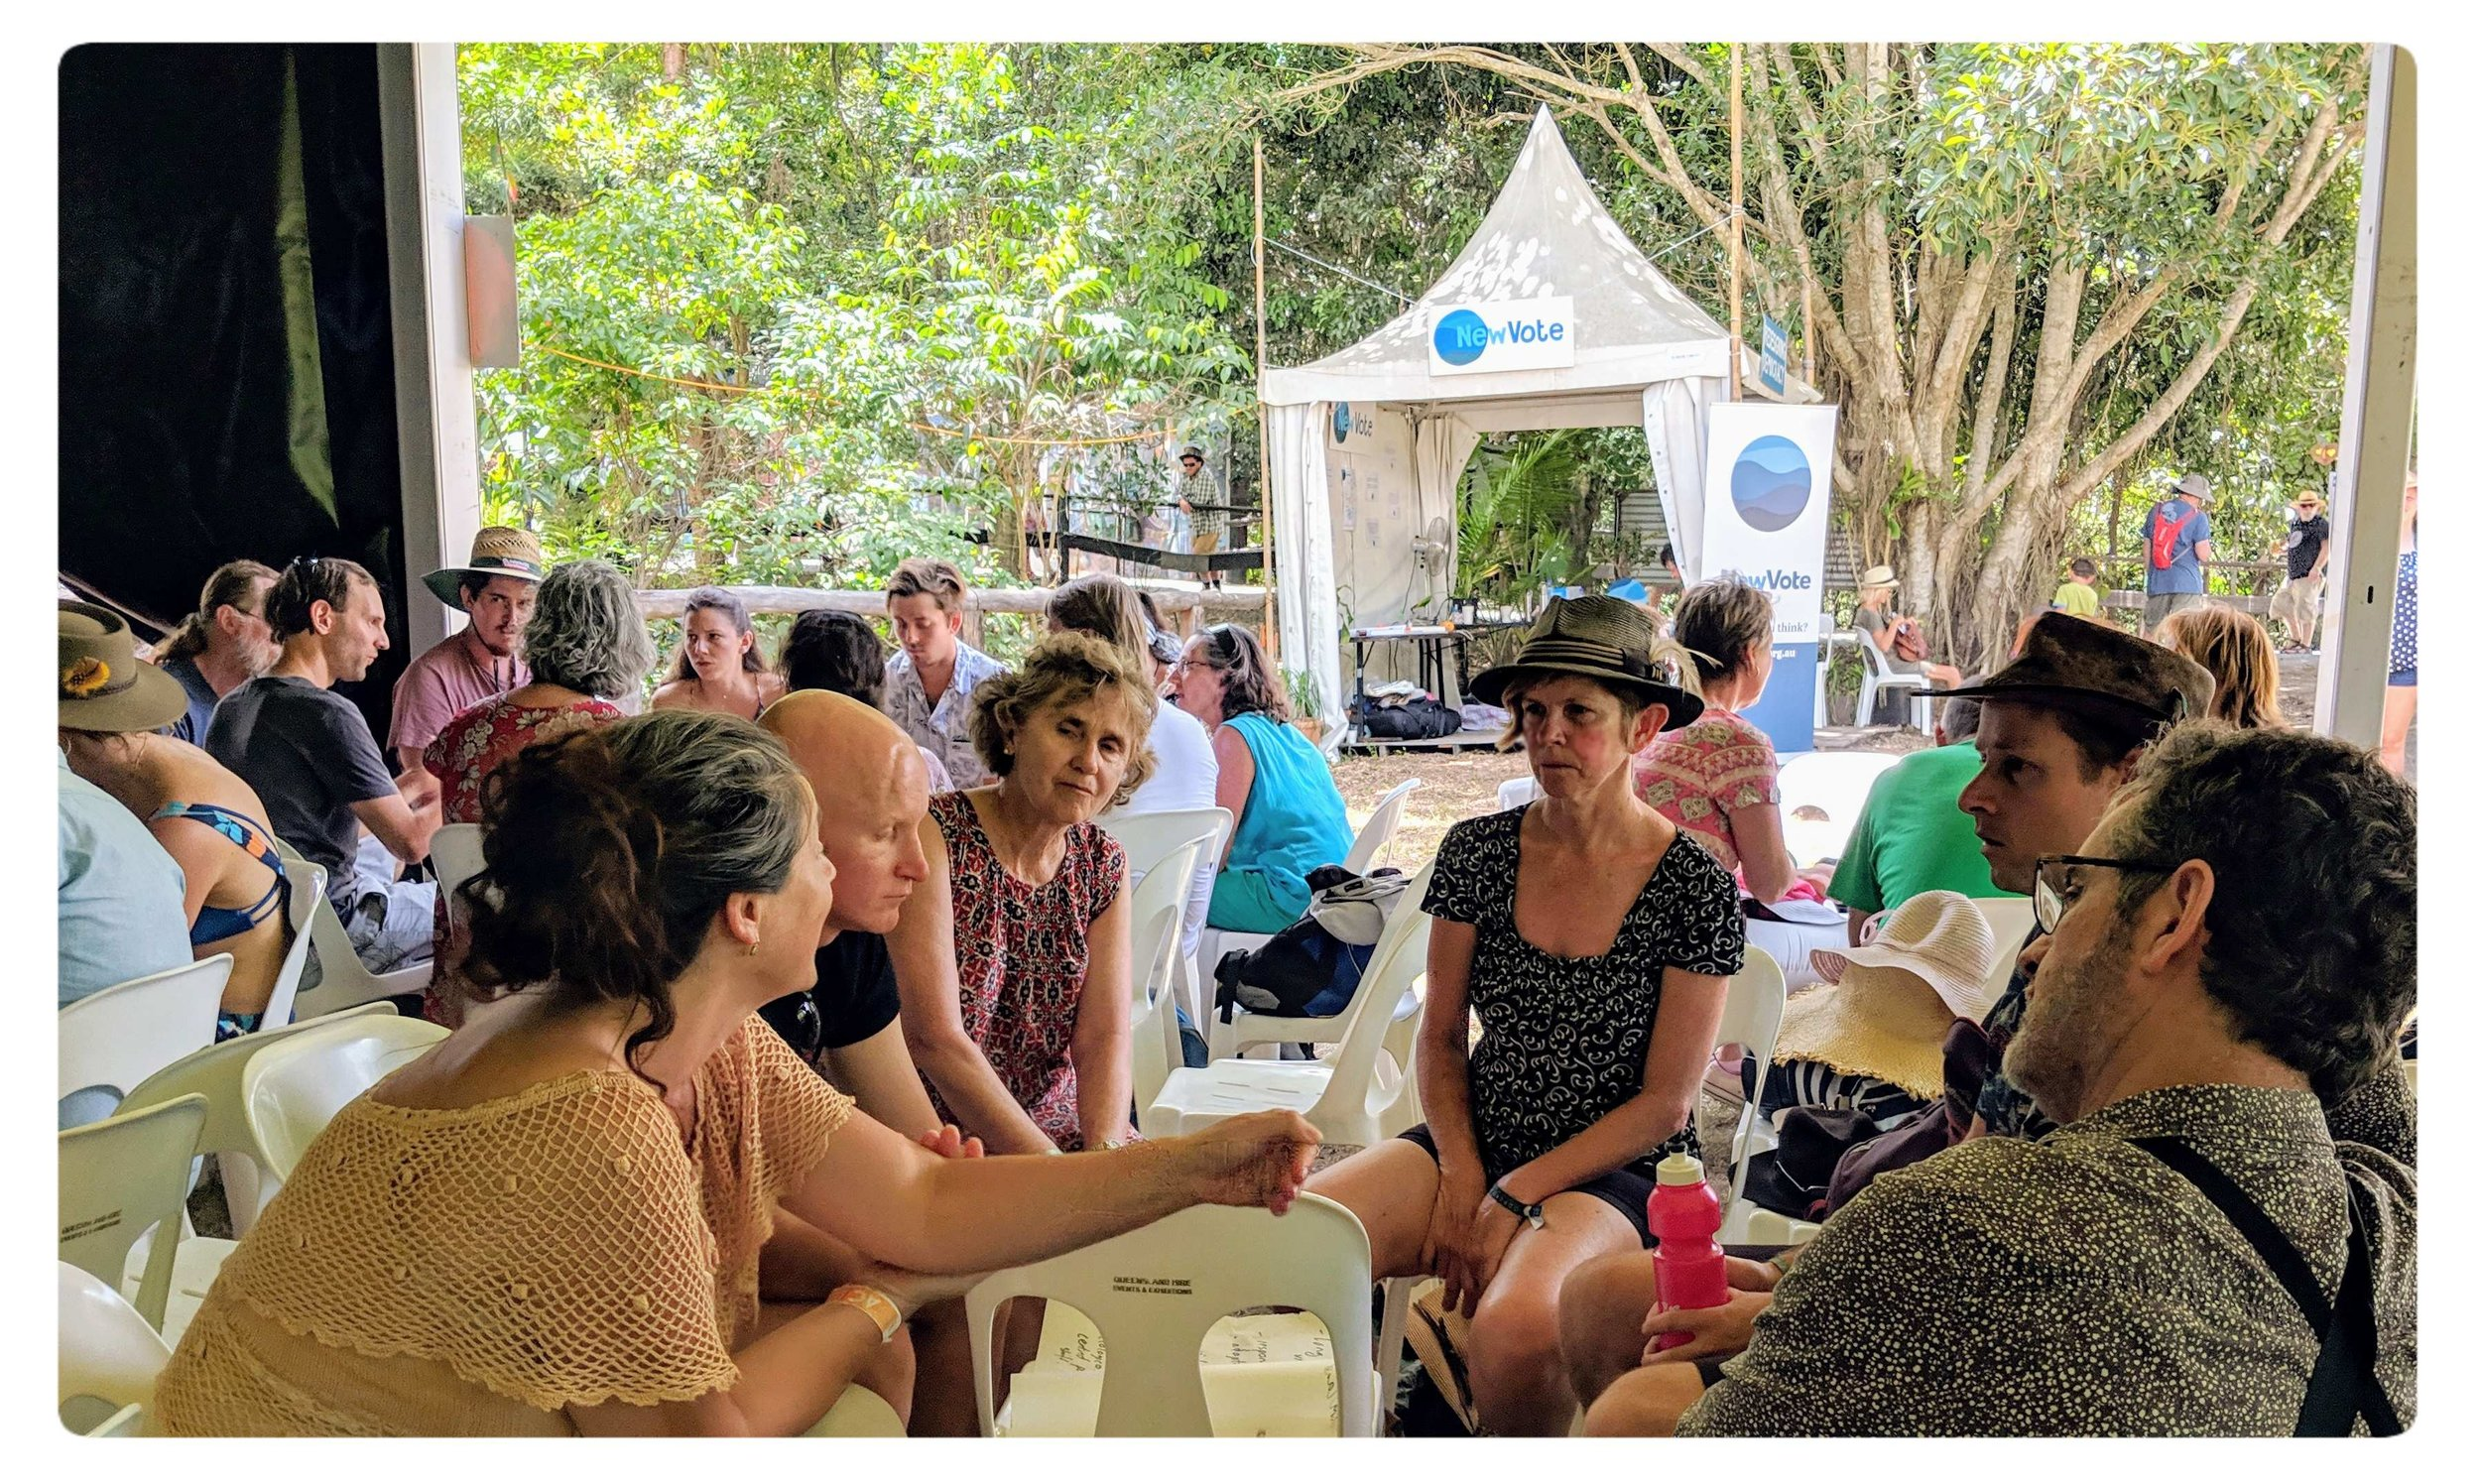 Festival goers participating the 'Redesigning Democracy', a 6-day listening and workshop series held at the Woodford Folk Festival Dec/Jan 2018/19